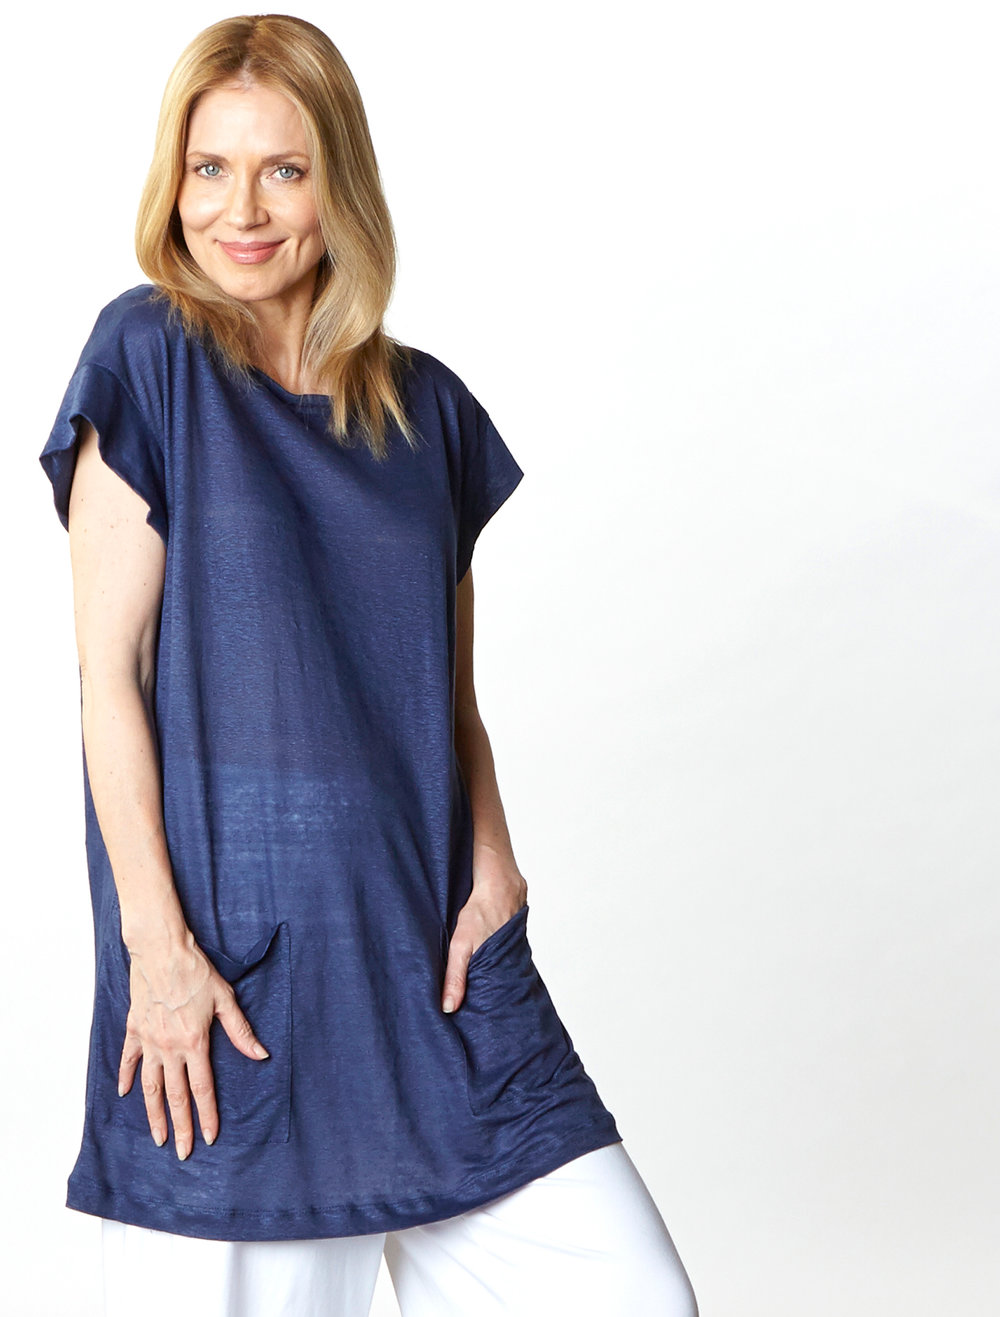 Clyde Tunic in Blue Italian Linen Knit, Oscar Pant in White Organic Bamboo Cotton